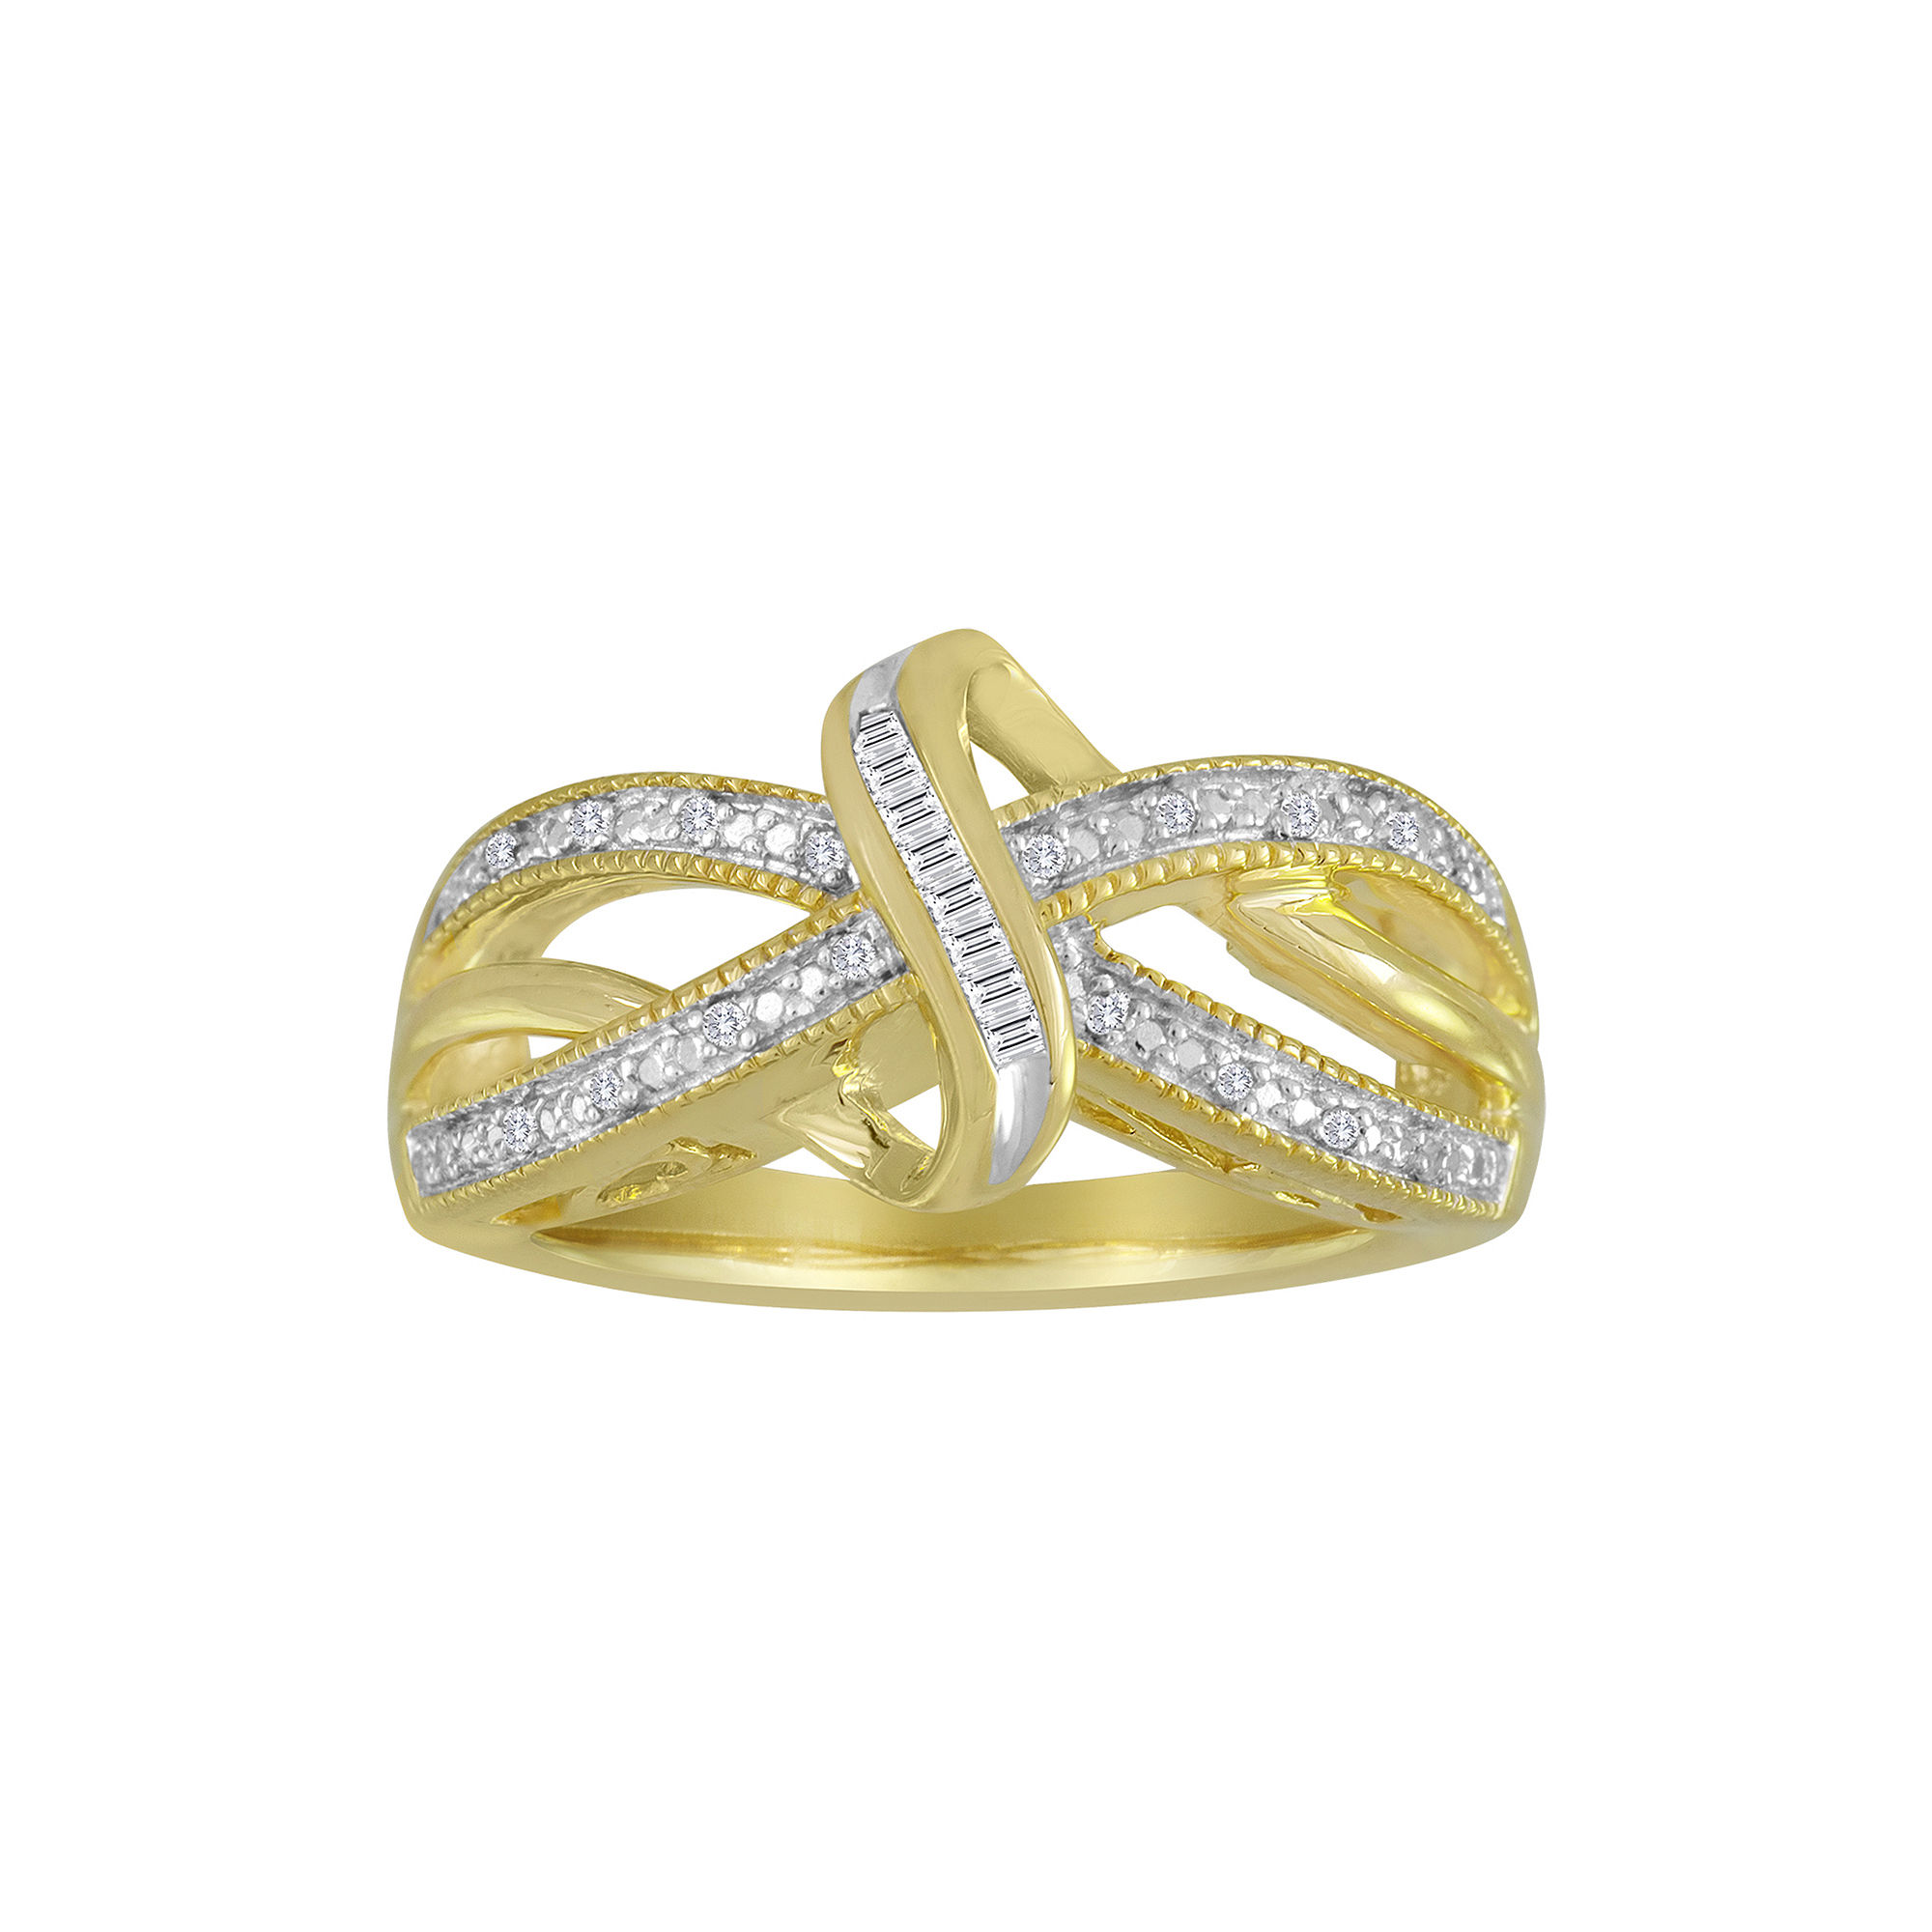 1/10 CT. T.W. Diamond 14K Yellow Gold Over Sterling Silver Vintage Twist Ring